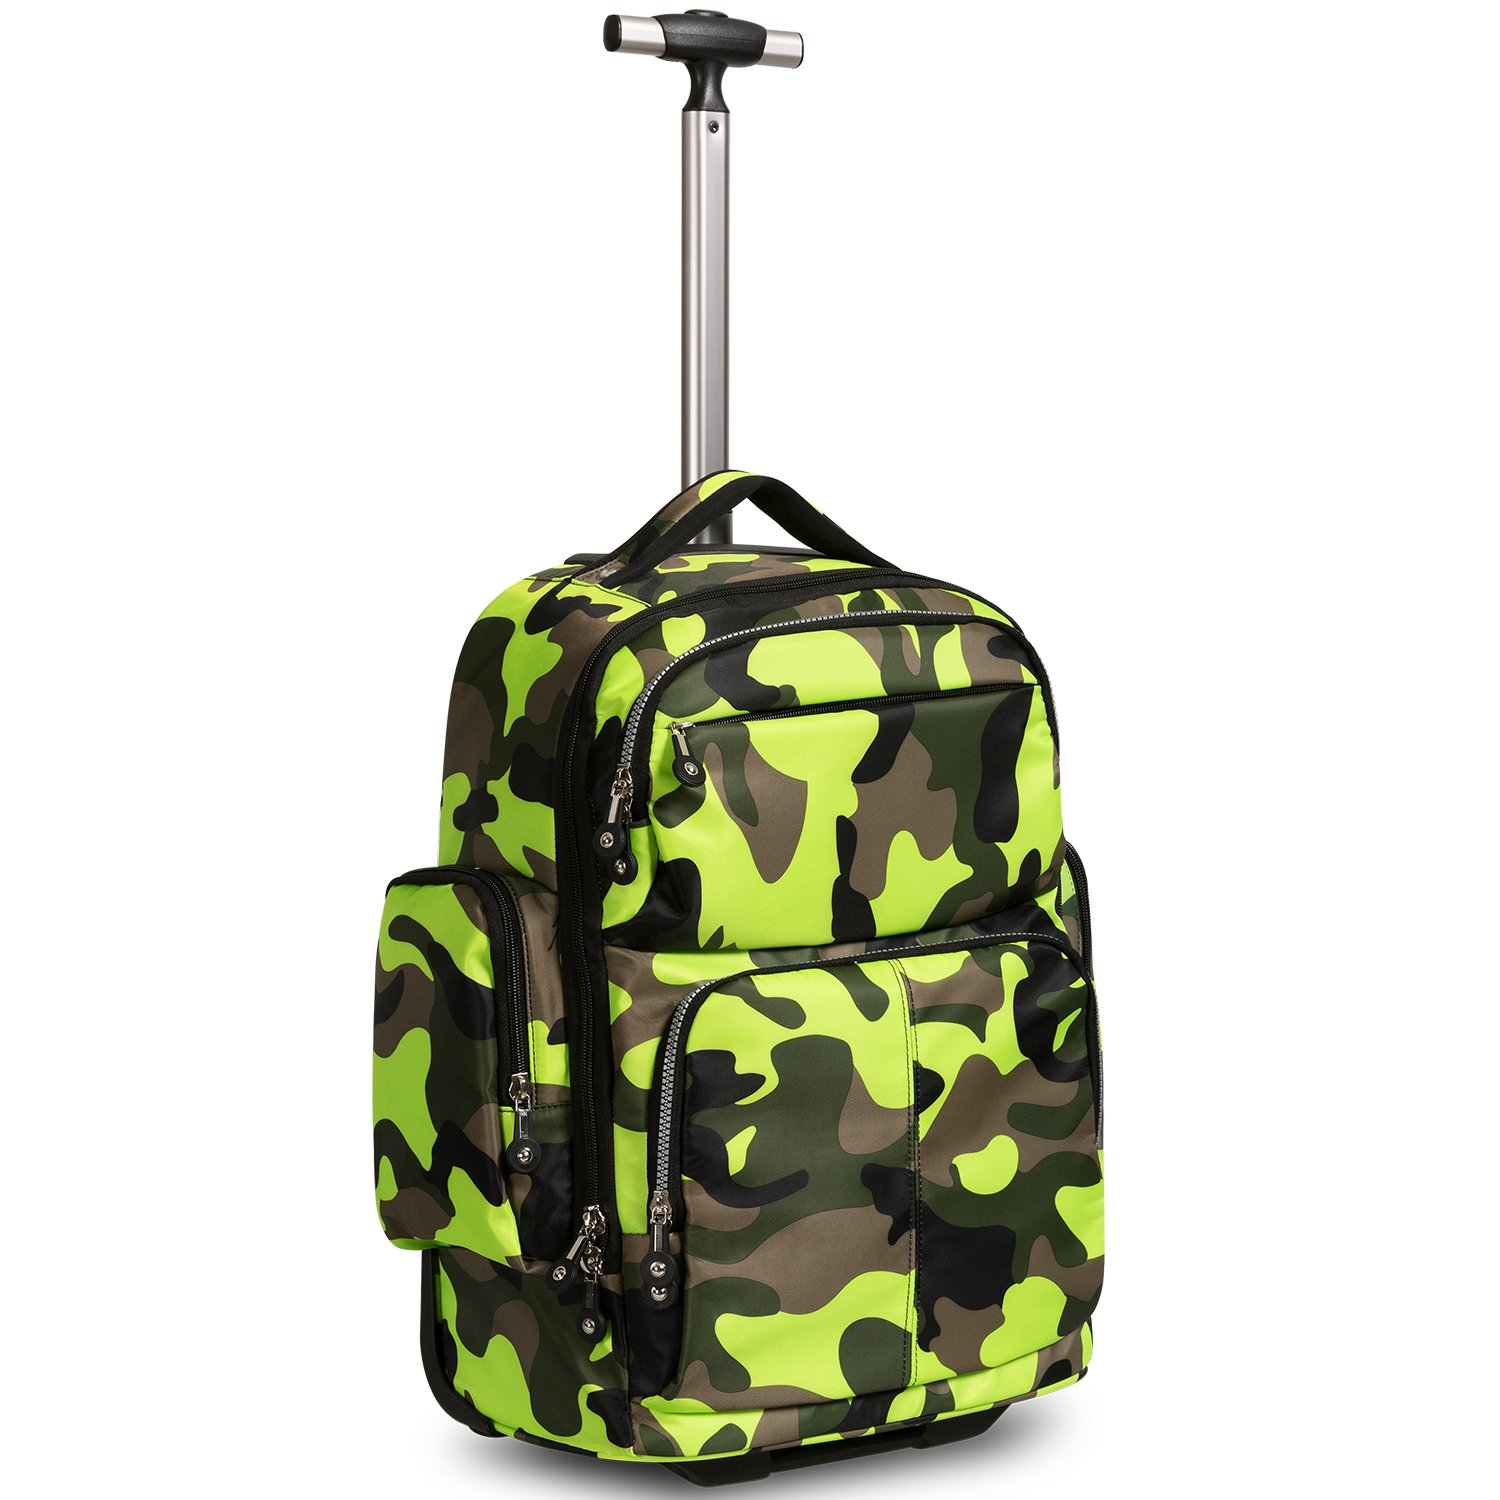 20 inches Big Storage Waterproof Wheeled Rolling Backpack Travel Luggage for Boys Students School Books Laptop Bag, Green Camouflage by HollyHOME (Image #1)